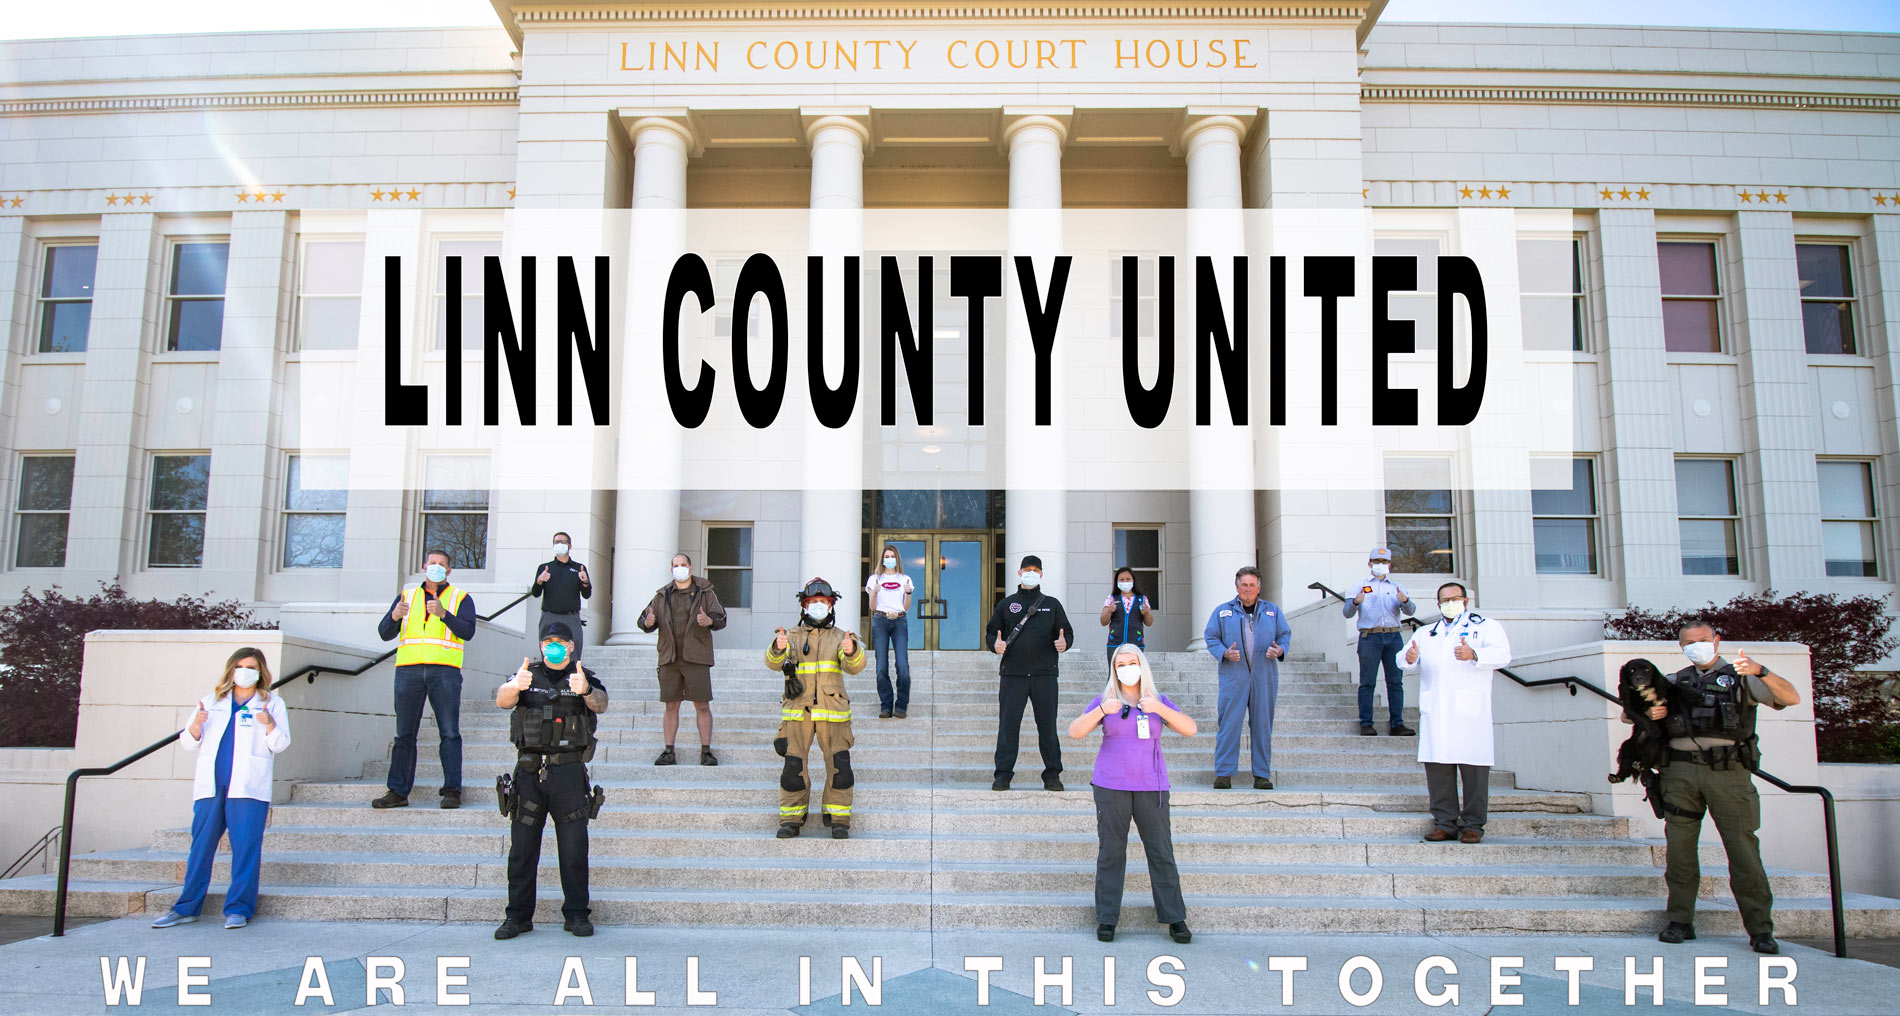 Linn County United - Wr are all in this together